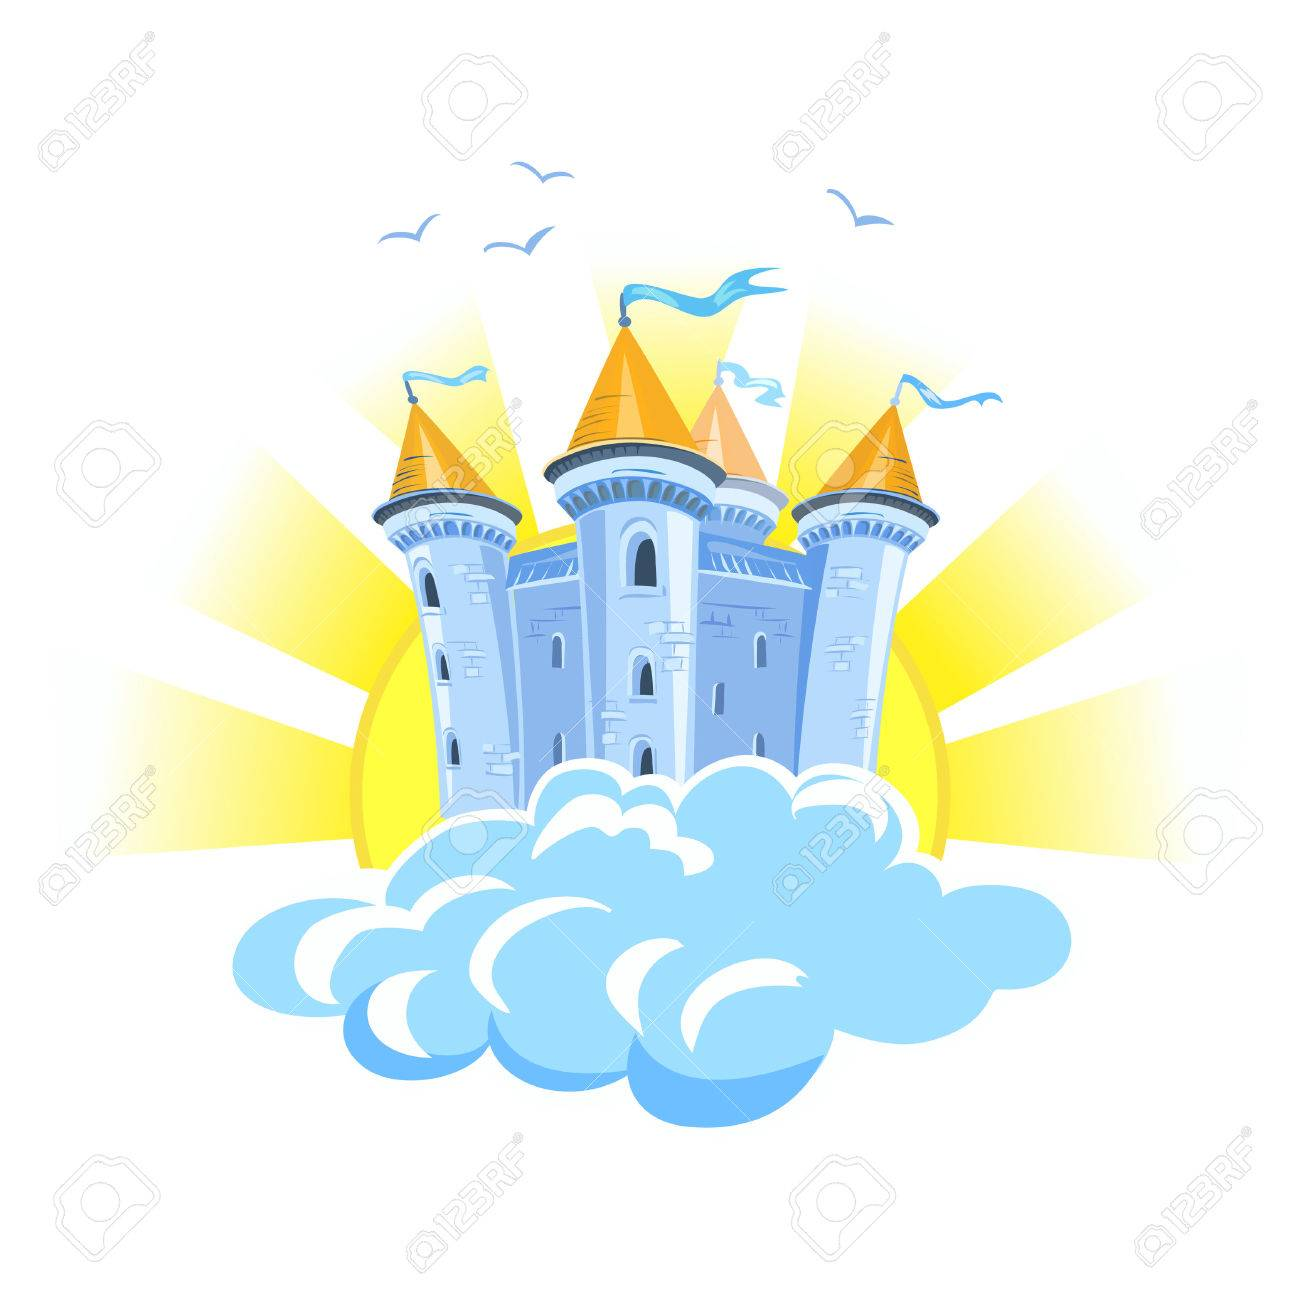 fairy tale castle in the clouds with the sun. vector illustration Standard-Bild - 34247741